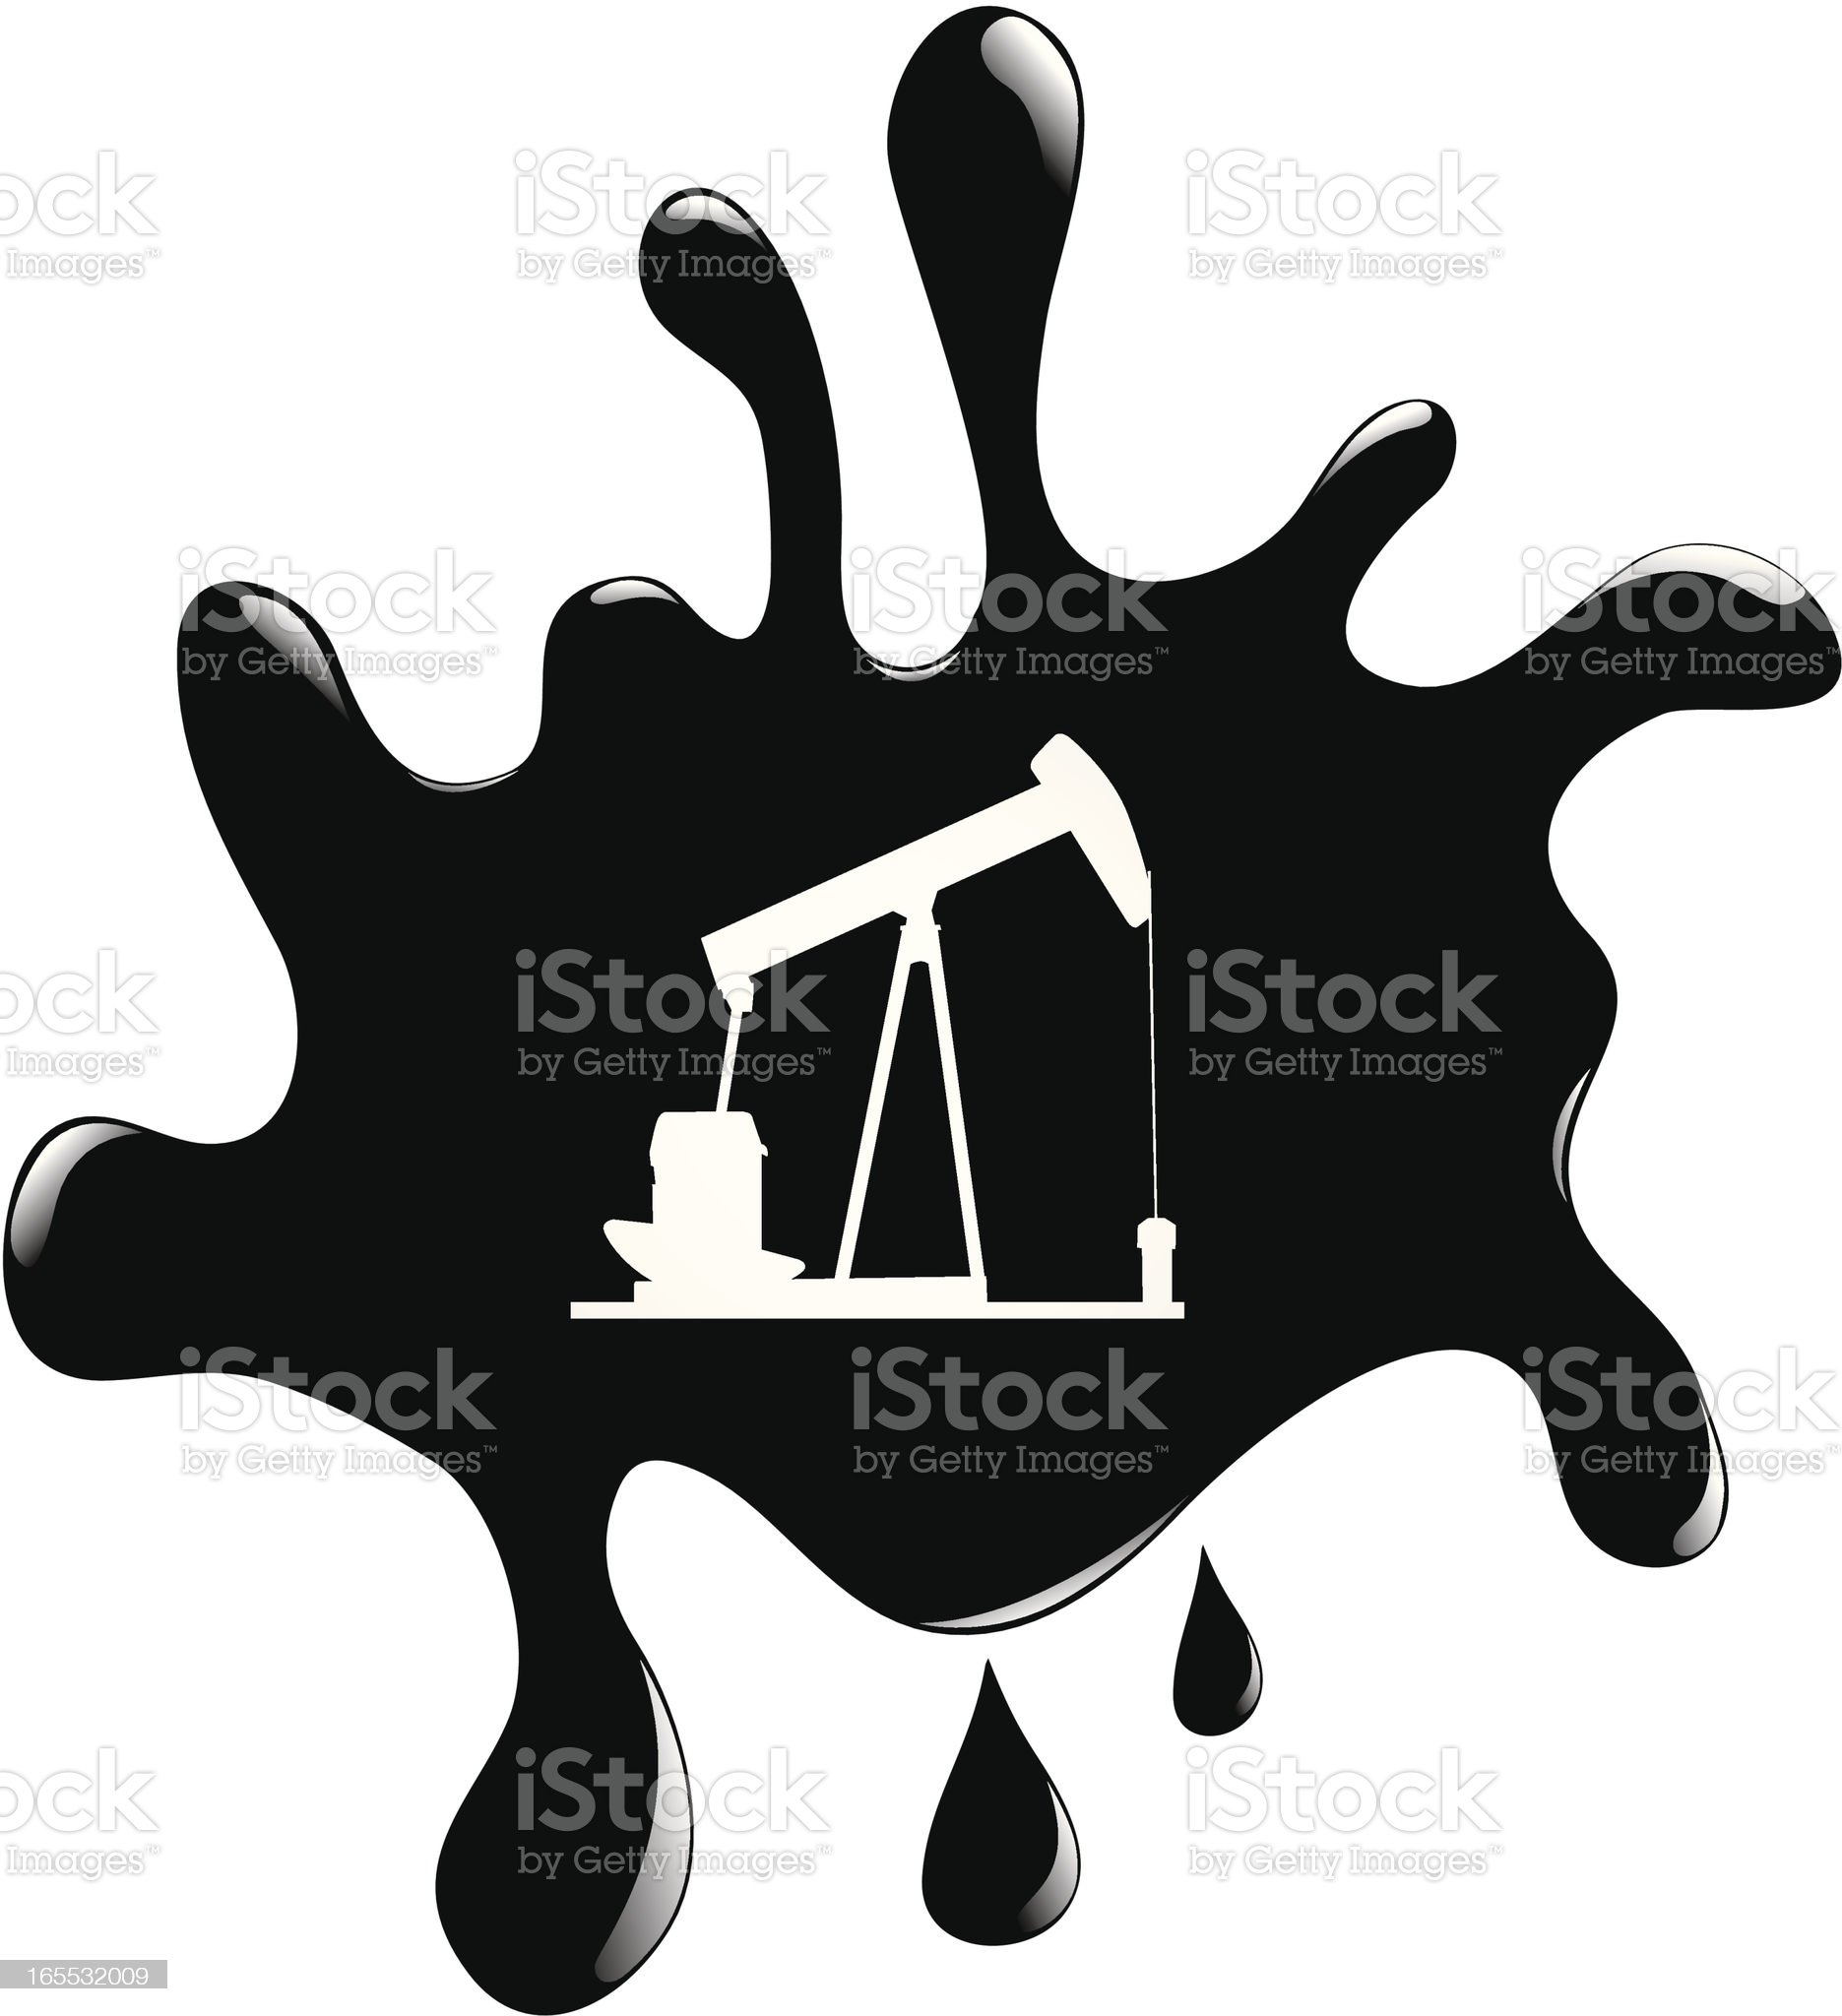 Oil Blob and Pumpjack royalty-free stock vector art